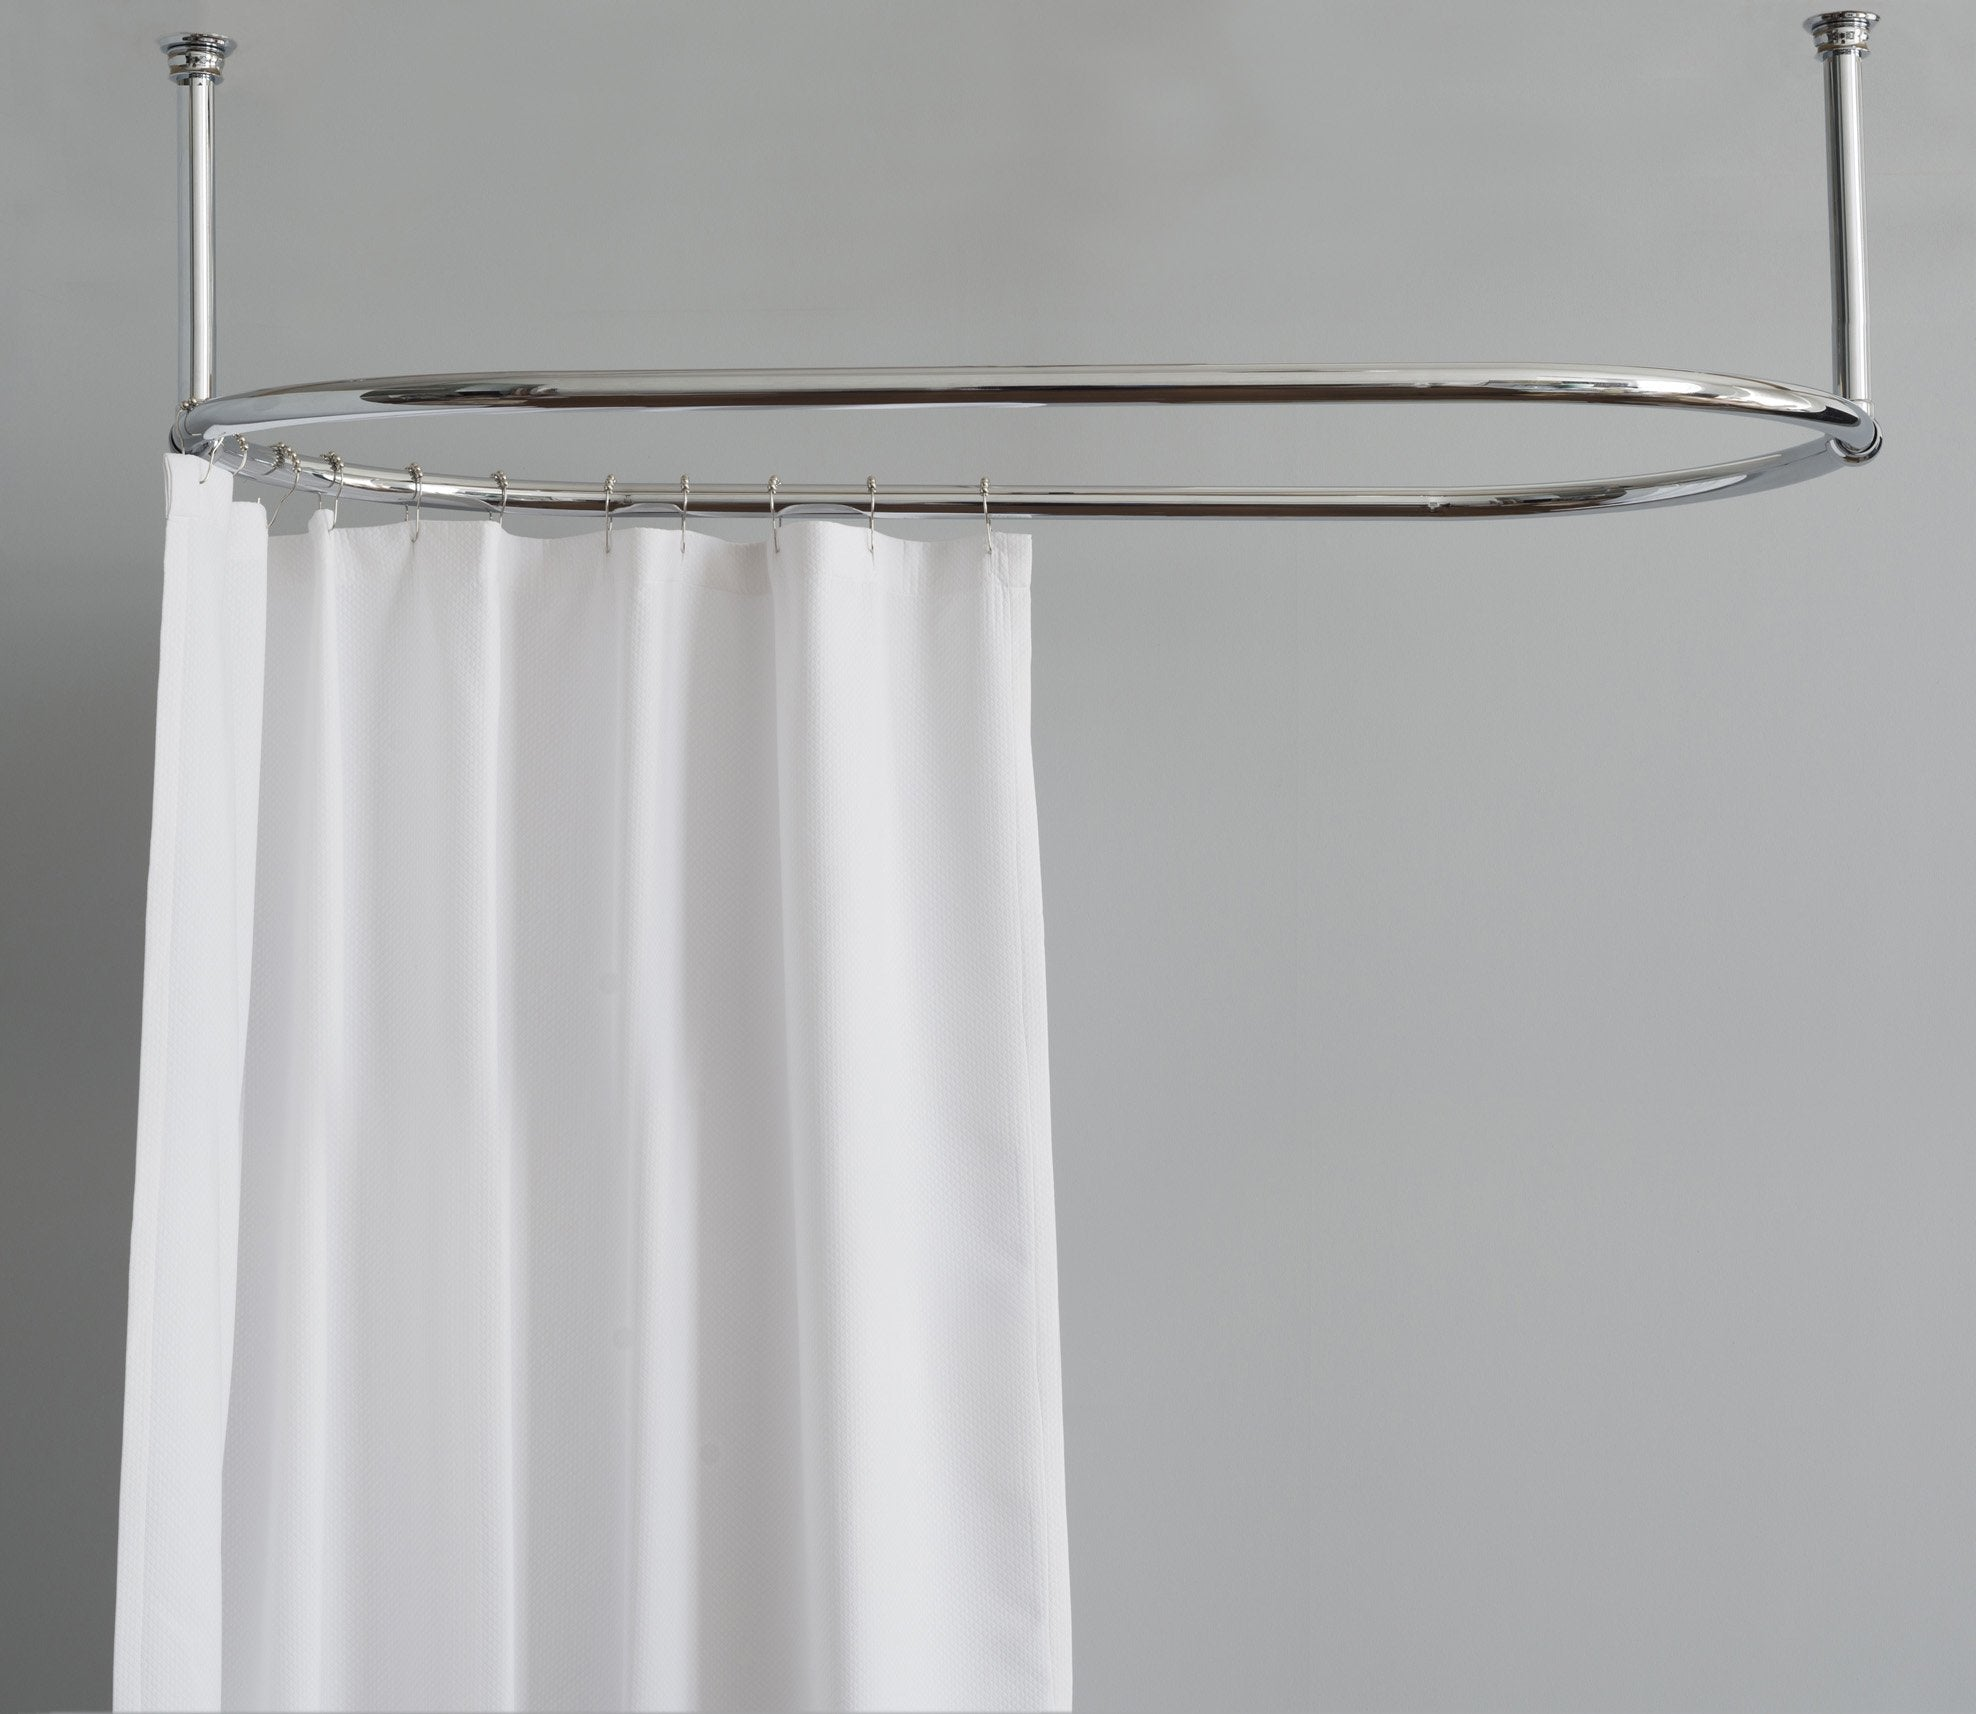 Shower Curtain Rail Round Rail Product Image 1